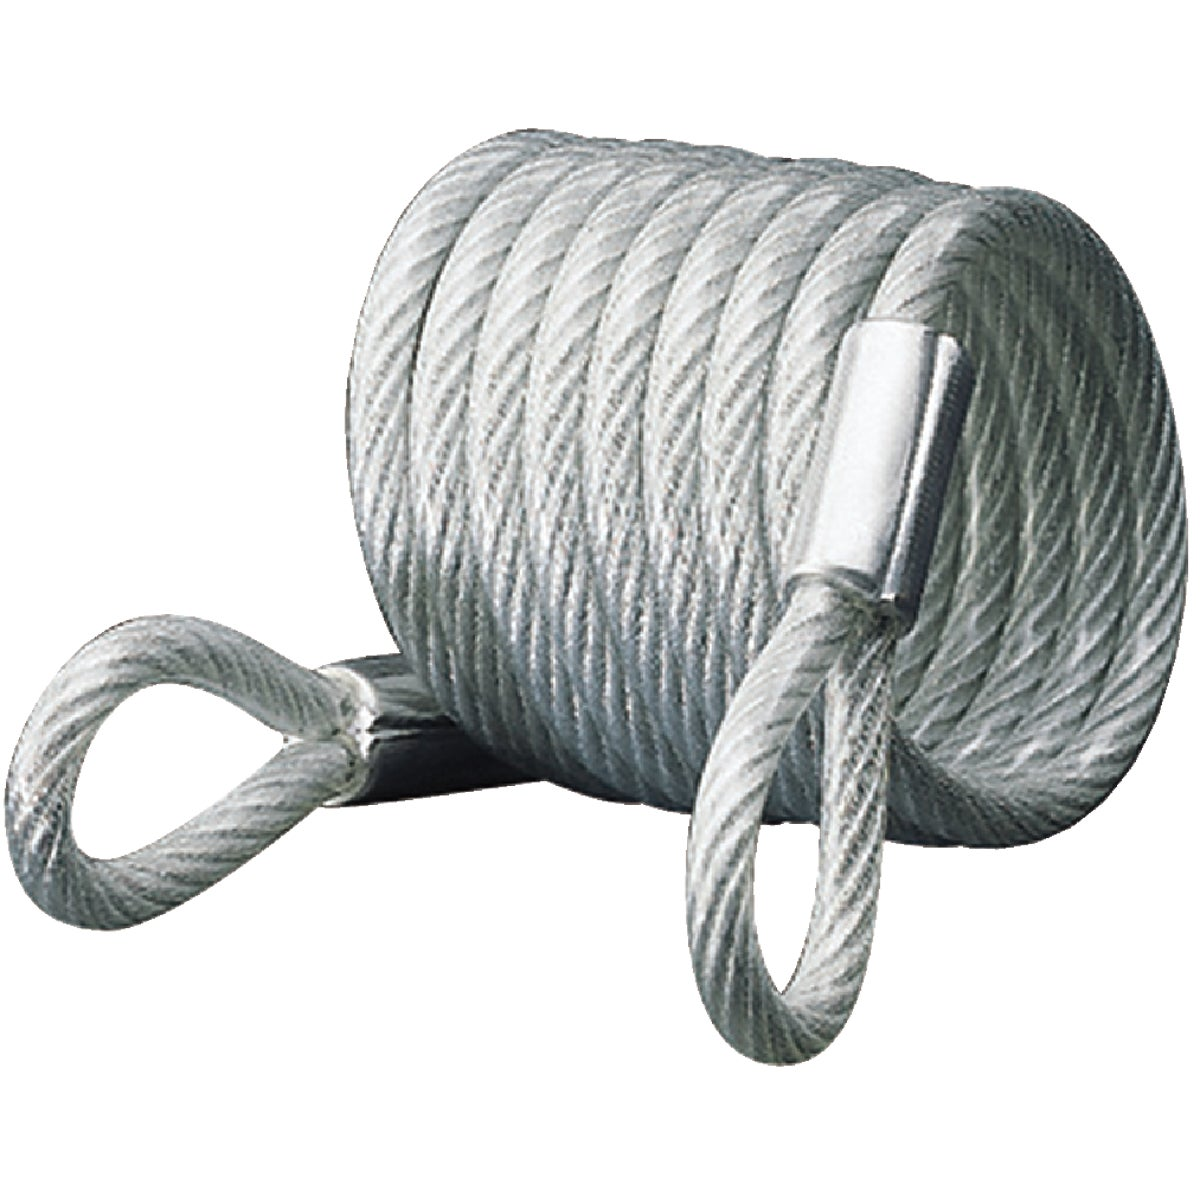 6' SELF-COILING CABLE - 65D by Master Lock Company